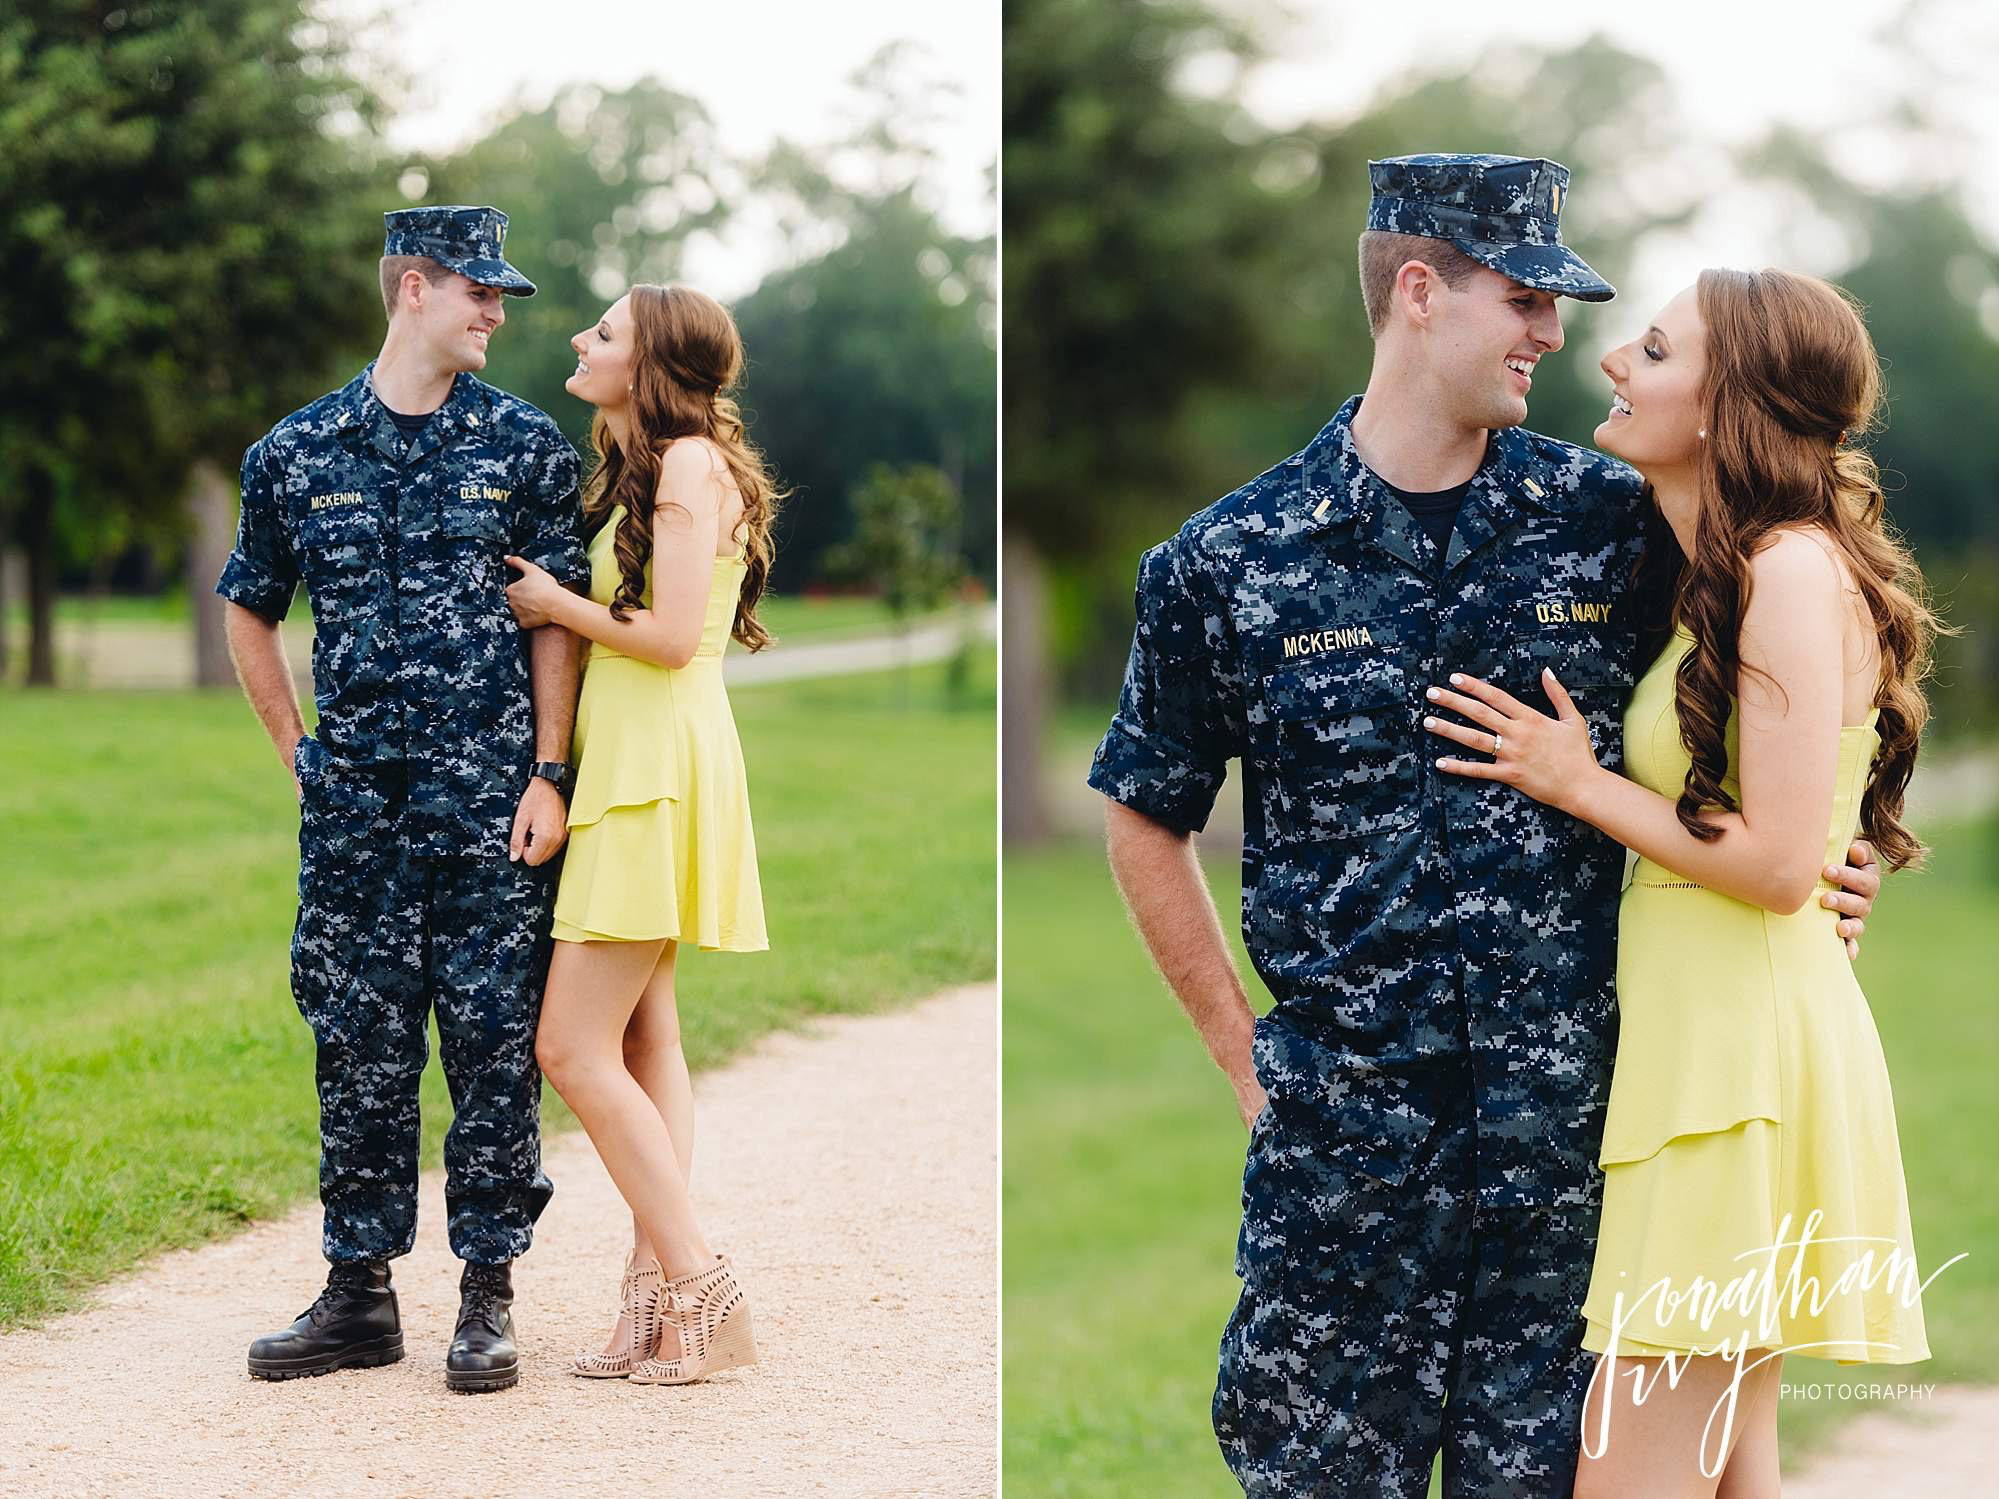 Navy Working Uniform Themed Engagement